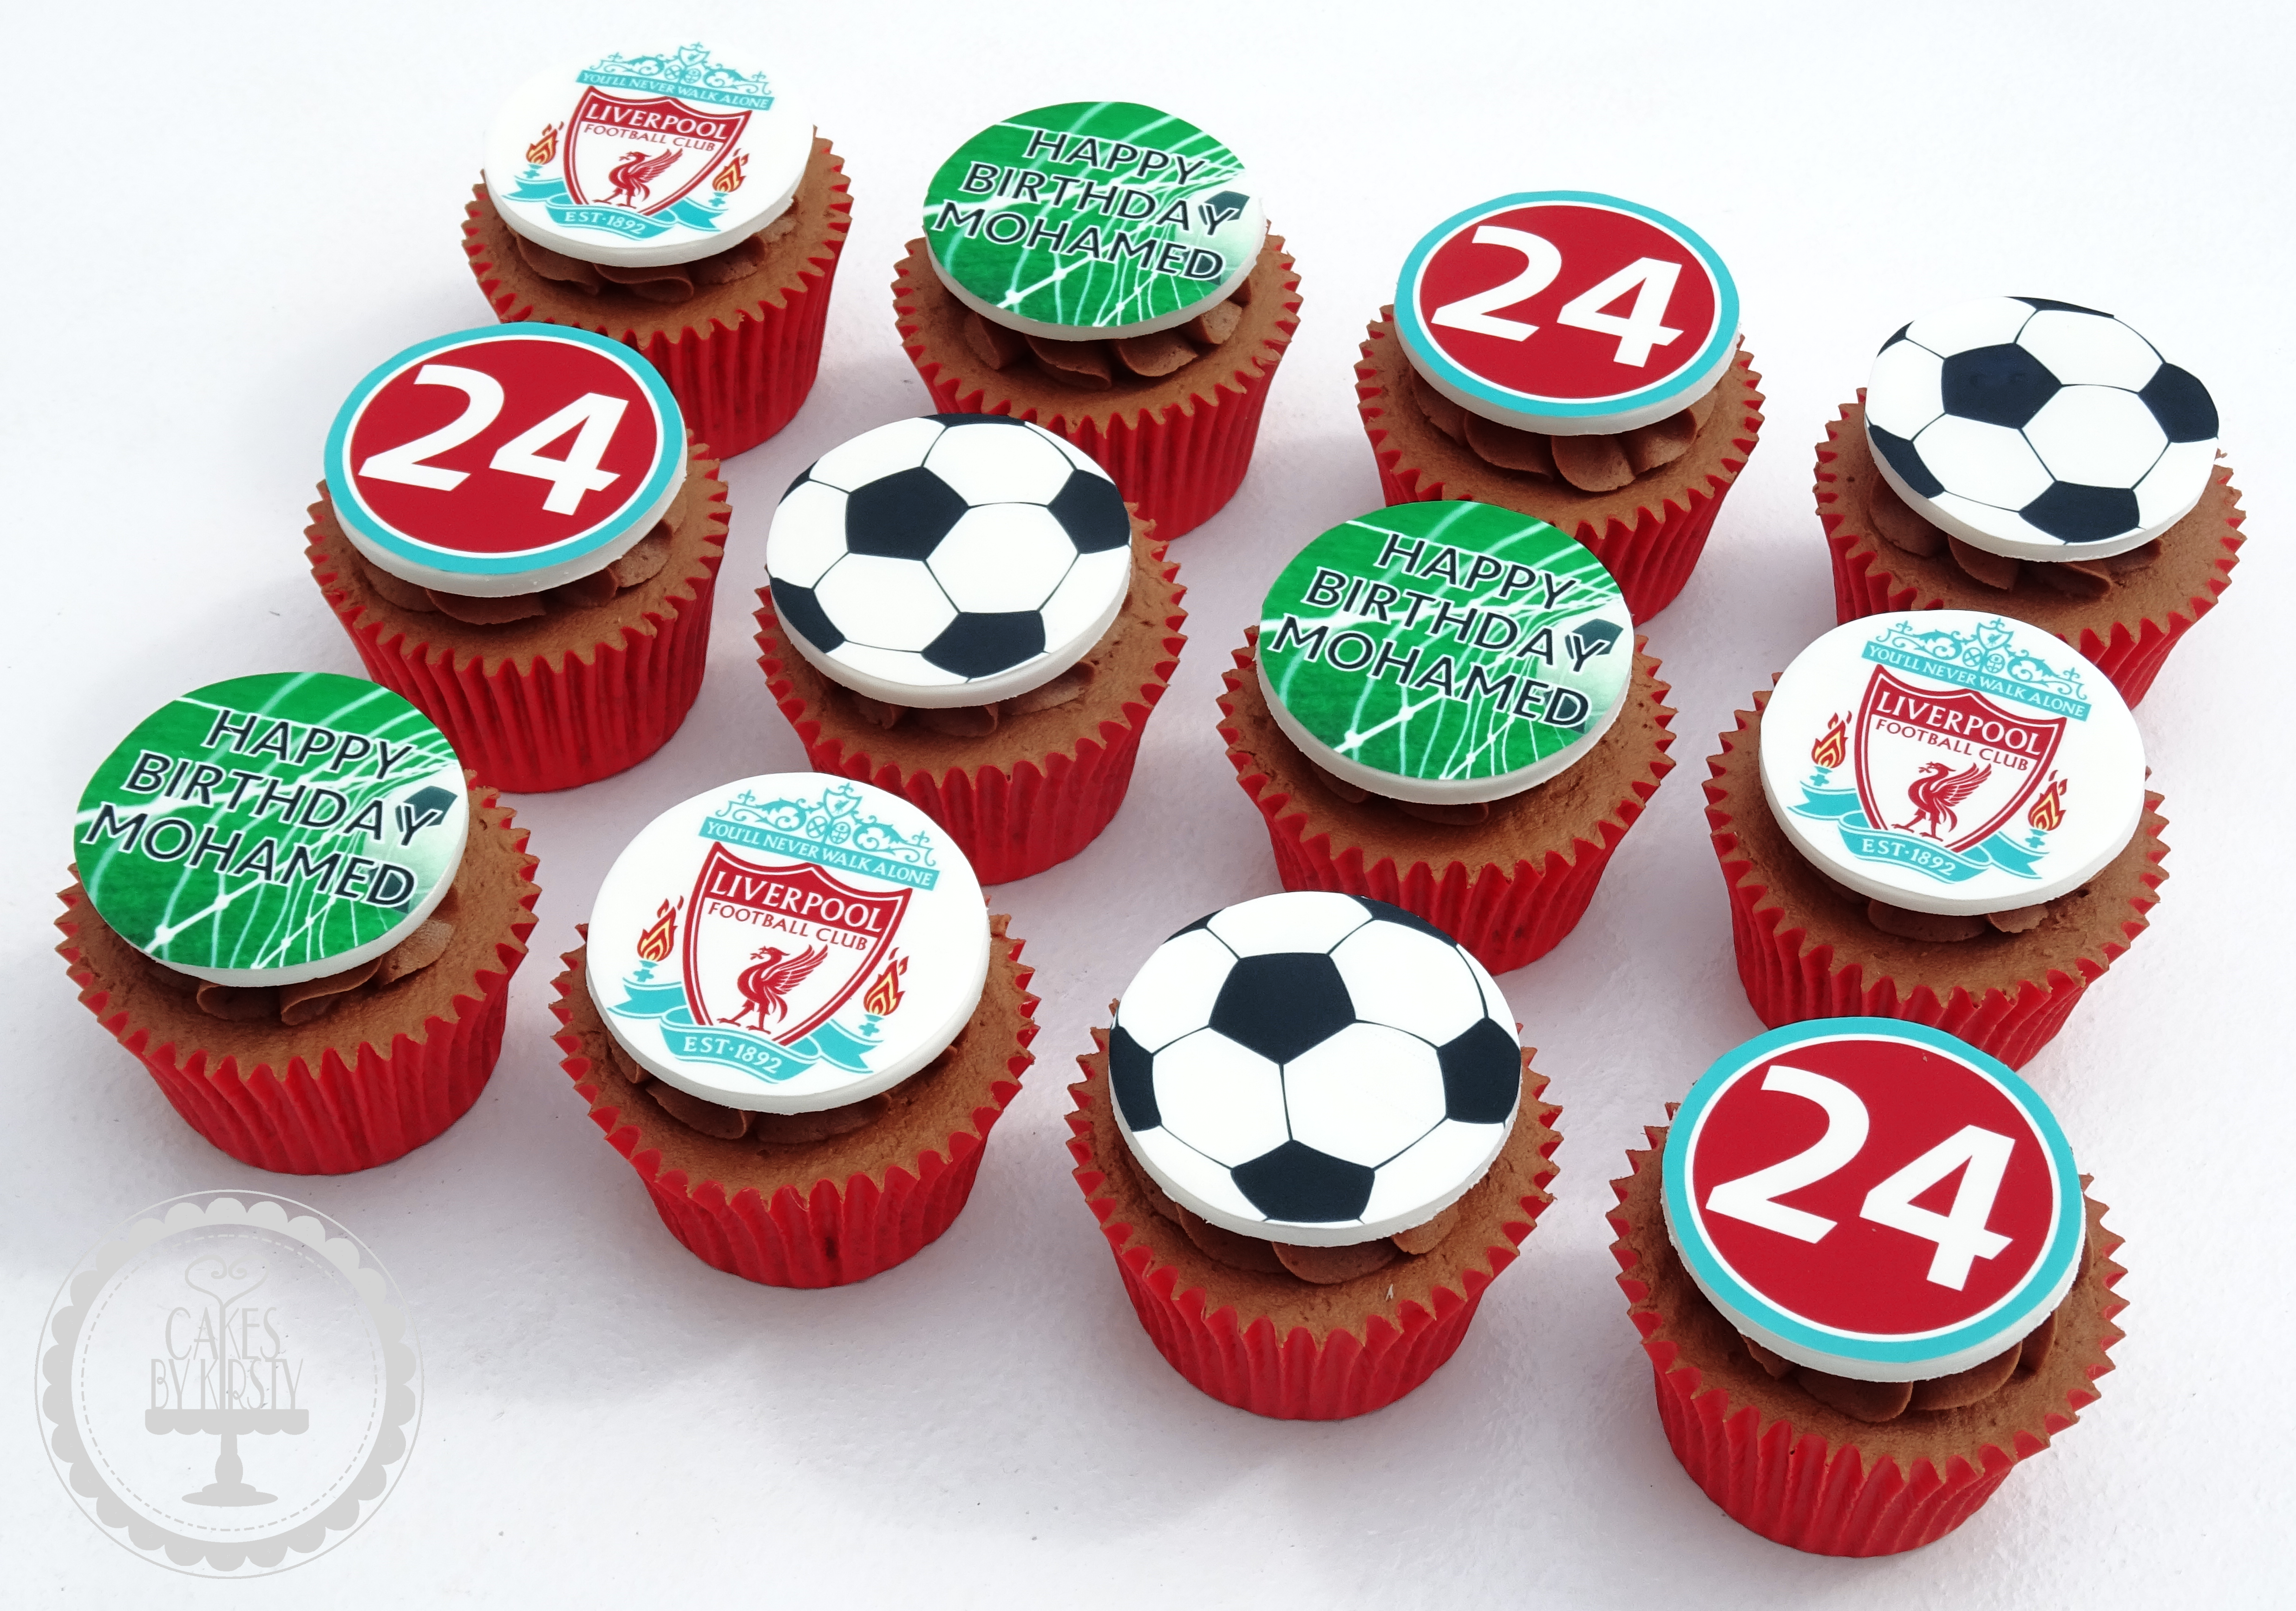 Liverpool FC Edible Image Cupcakes